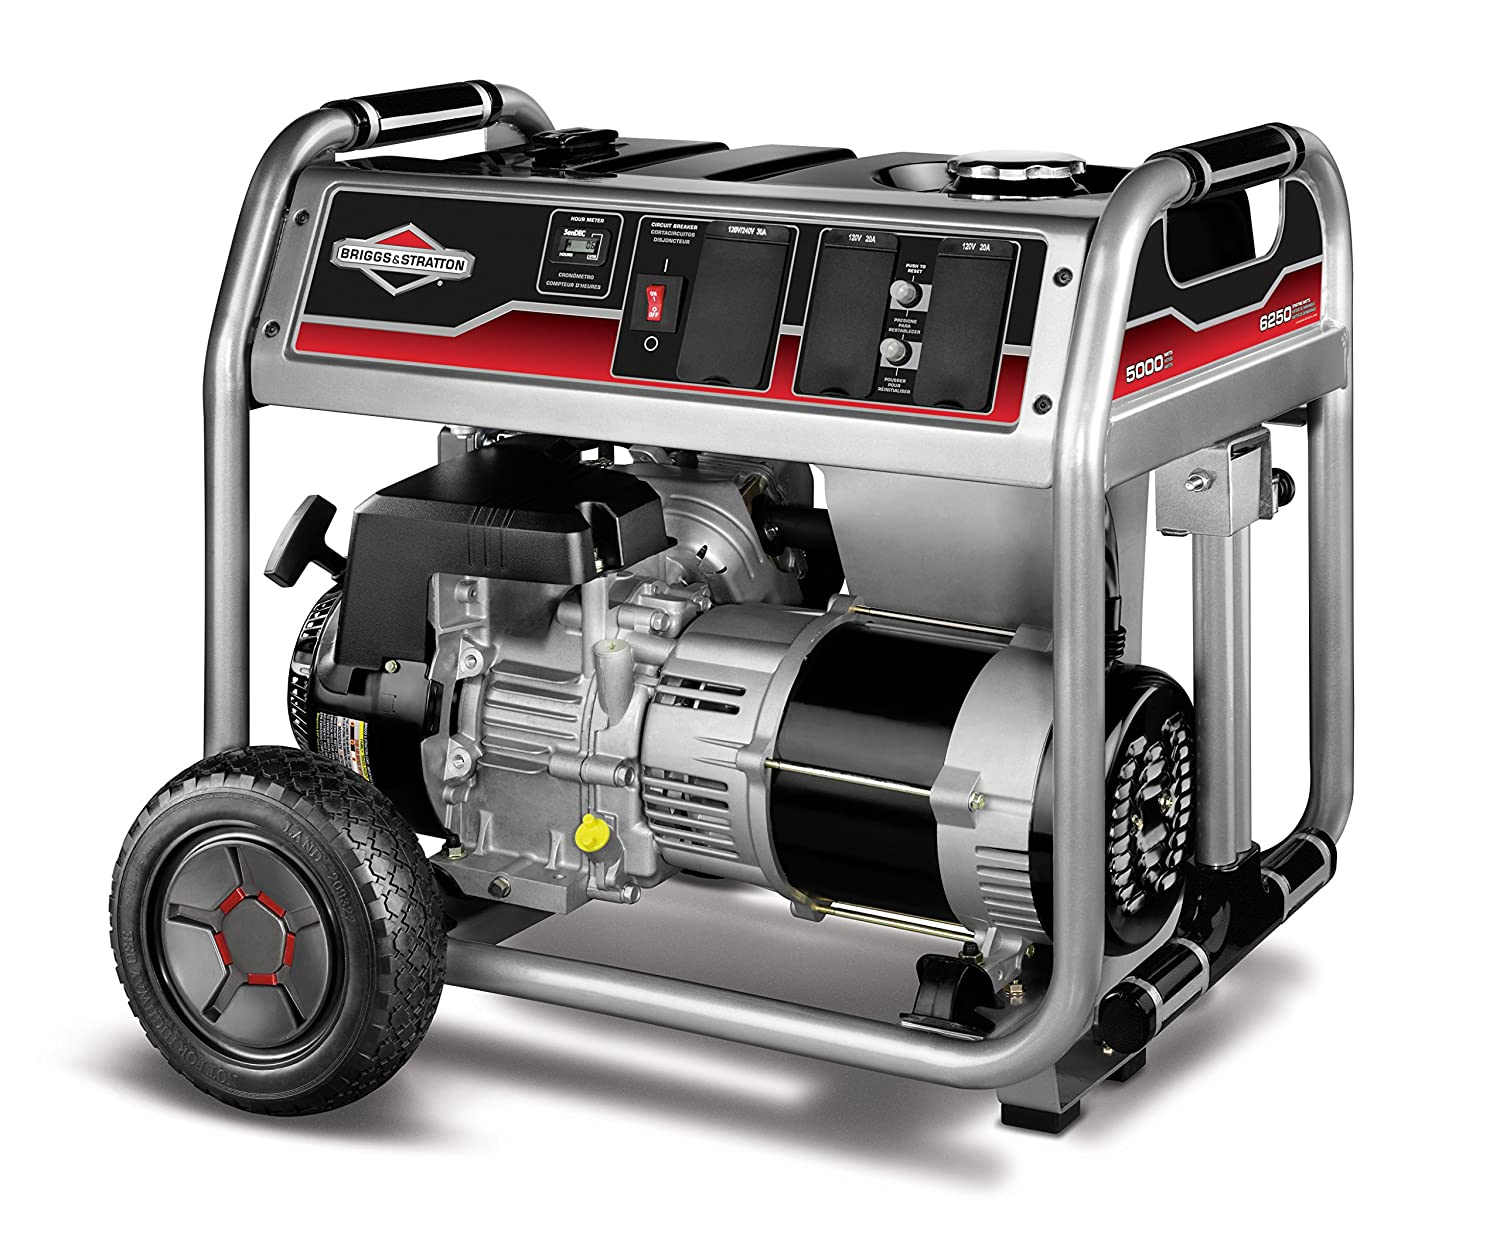 Briggs & Stratton 30622, 5000 Running Watts/6250 Starting Watts Gas Powered Portable Generator Discontinued by Manufacturer Briggs and Stratton Power Products